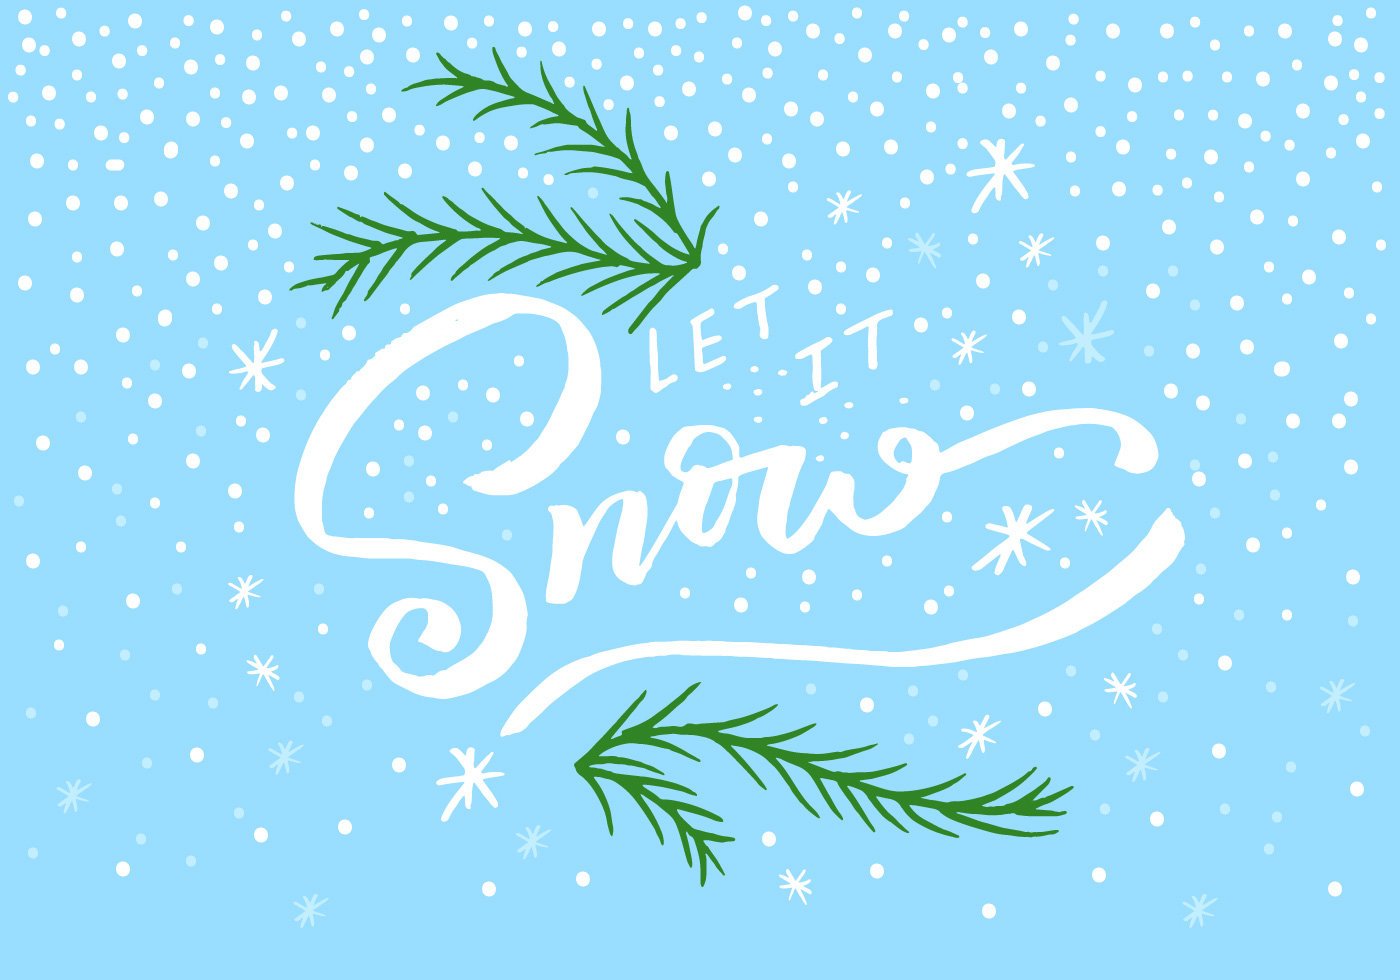 Let It Snow Lettering Download Free Vector Art Stock